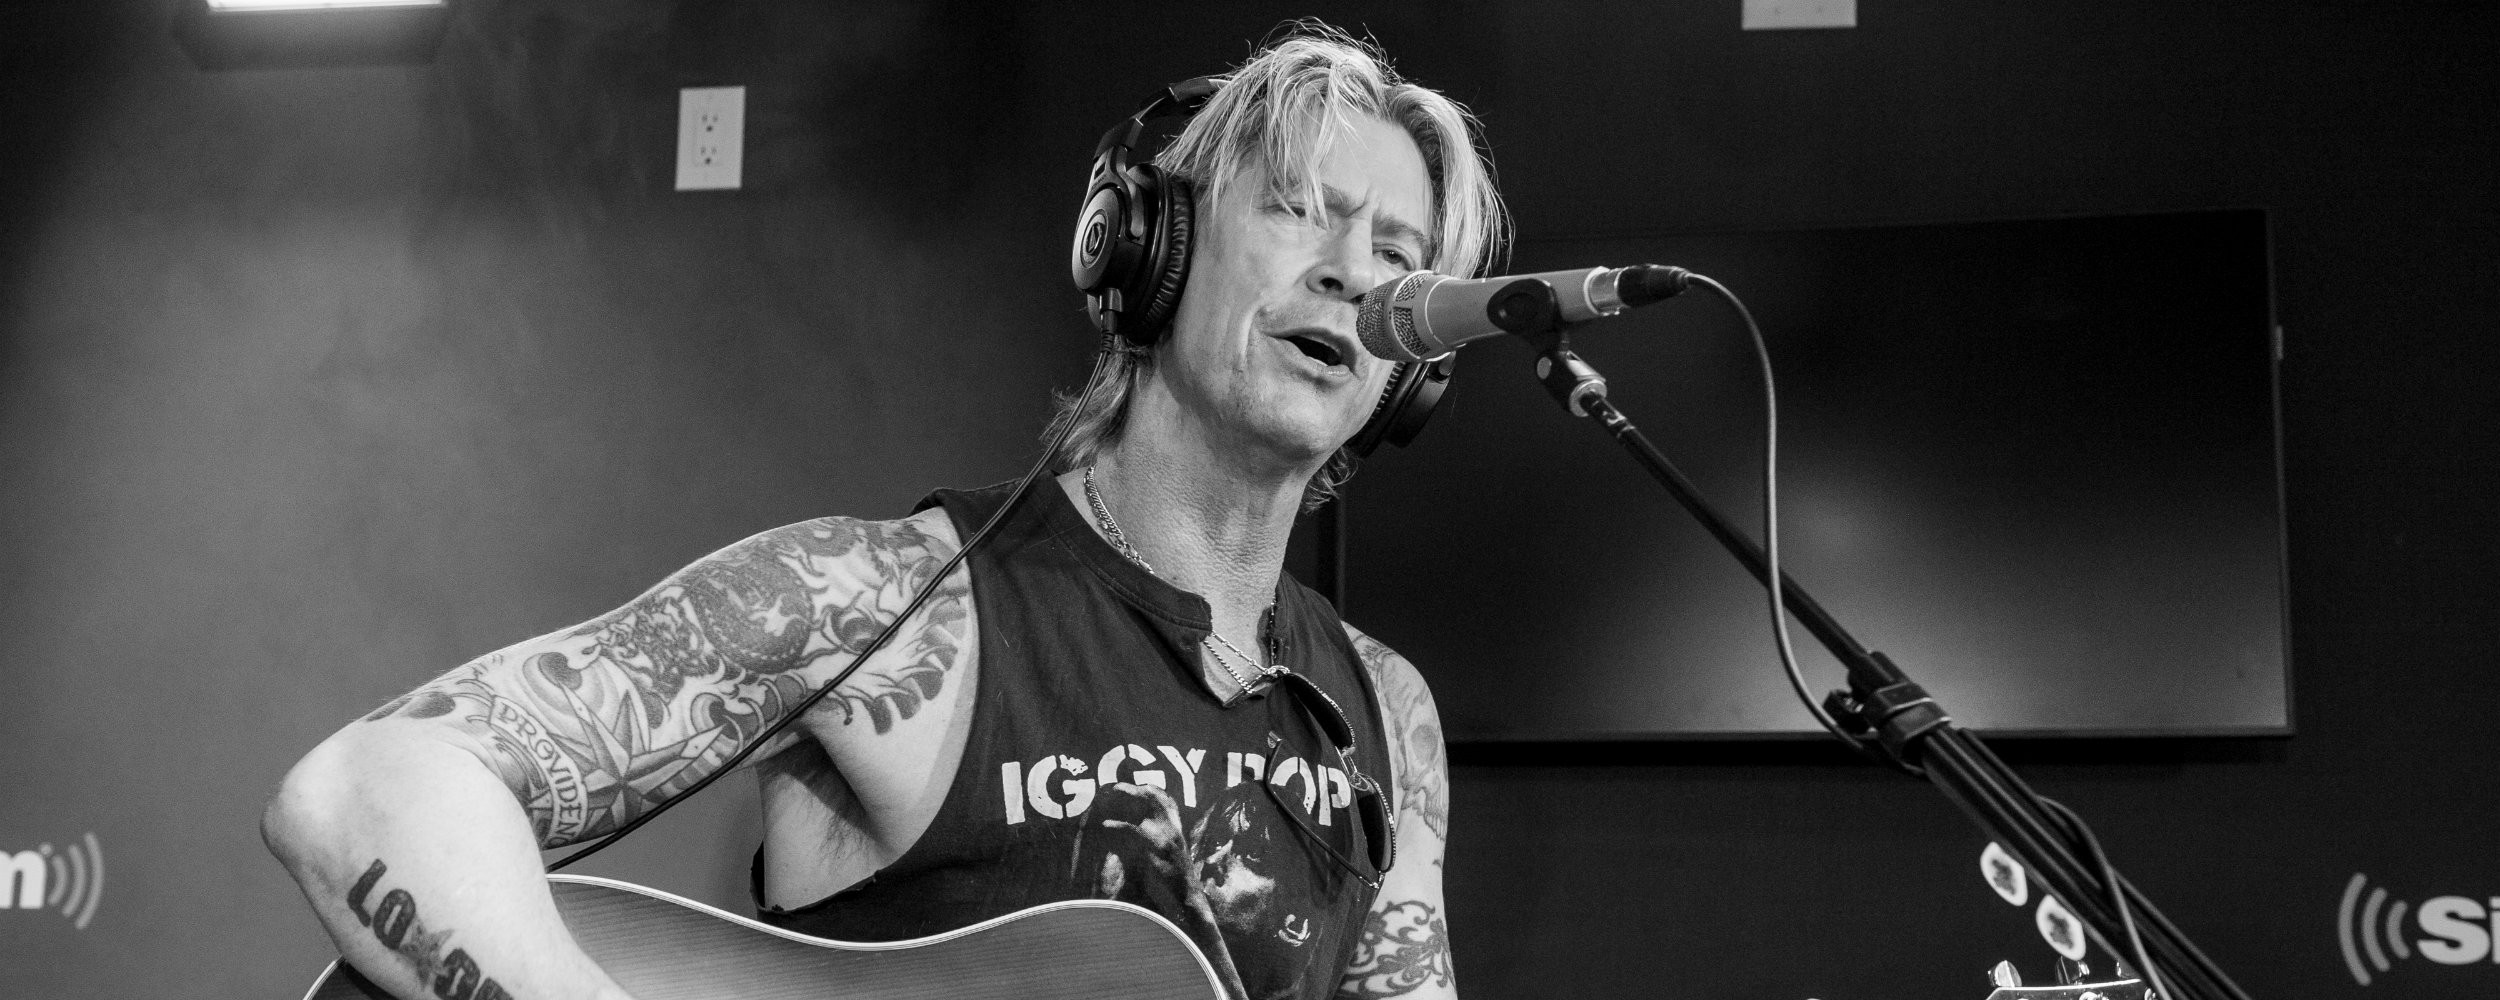 "Duff McKagan Talks New Album <i>Tenderness</i> and Why Social Media and Cable News Are ""Poisonous"""